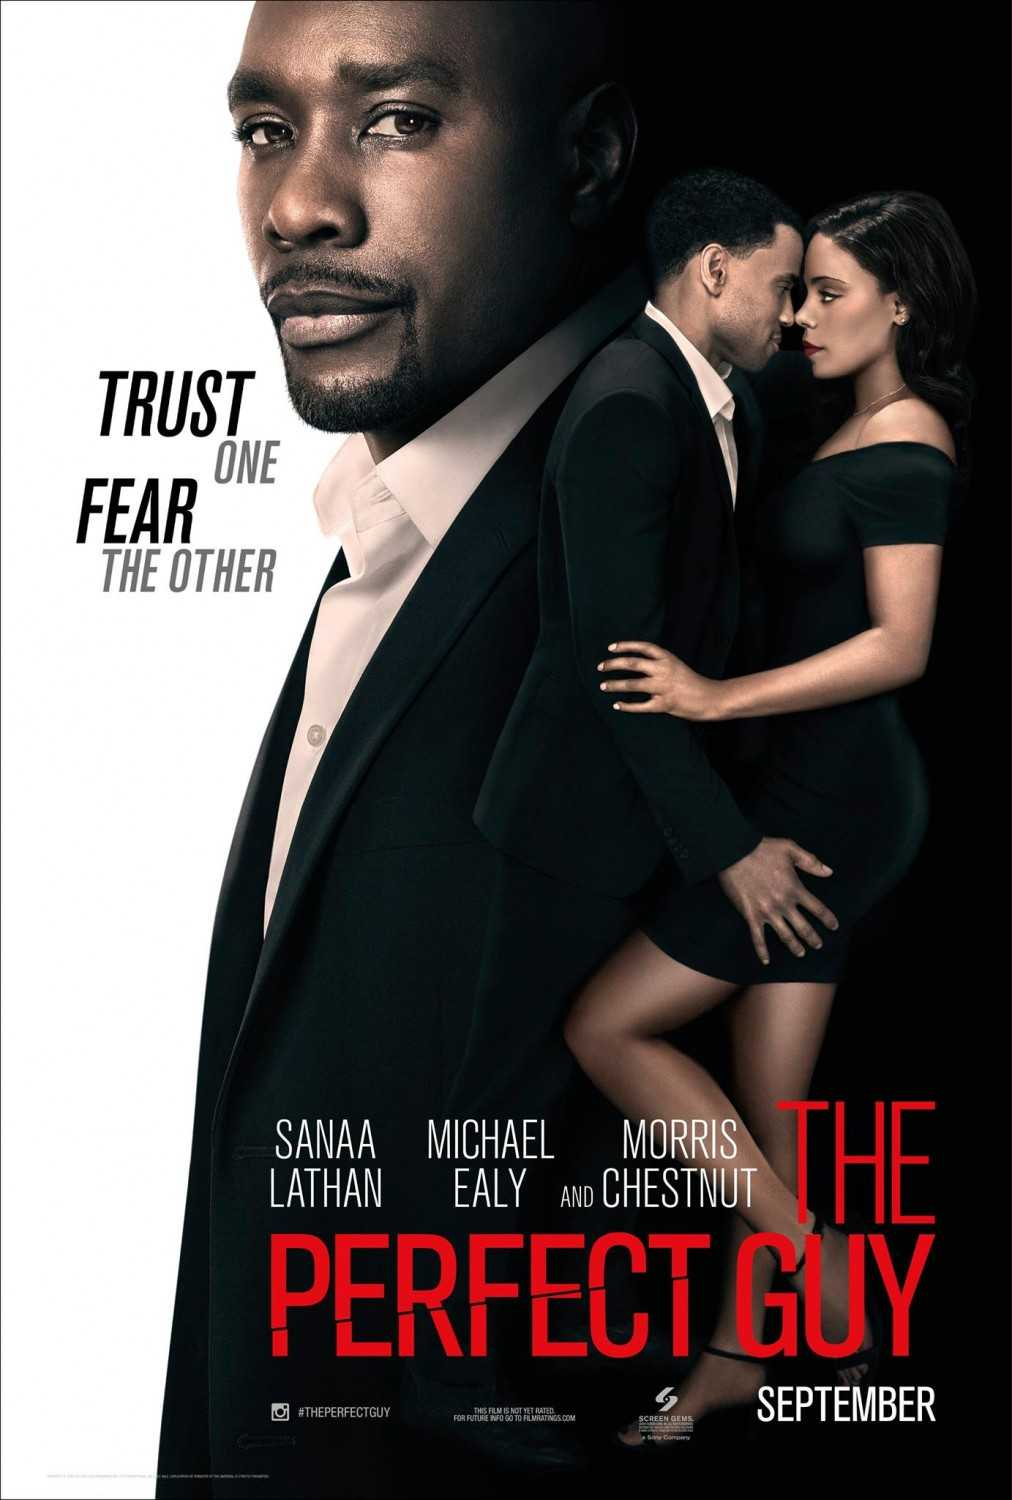 Sanaa Lathan, Michael Ealy, And Morris Chestnut Star In 'The Perfect Guy' | The Perfect Guy